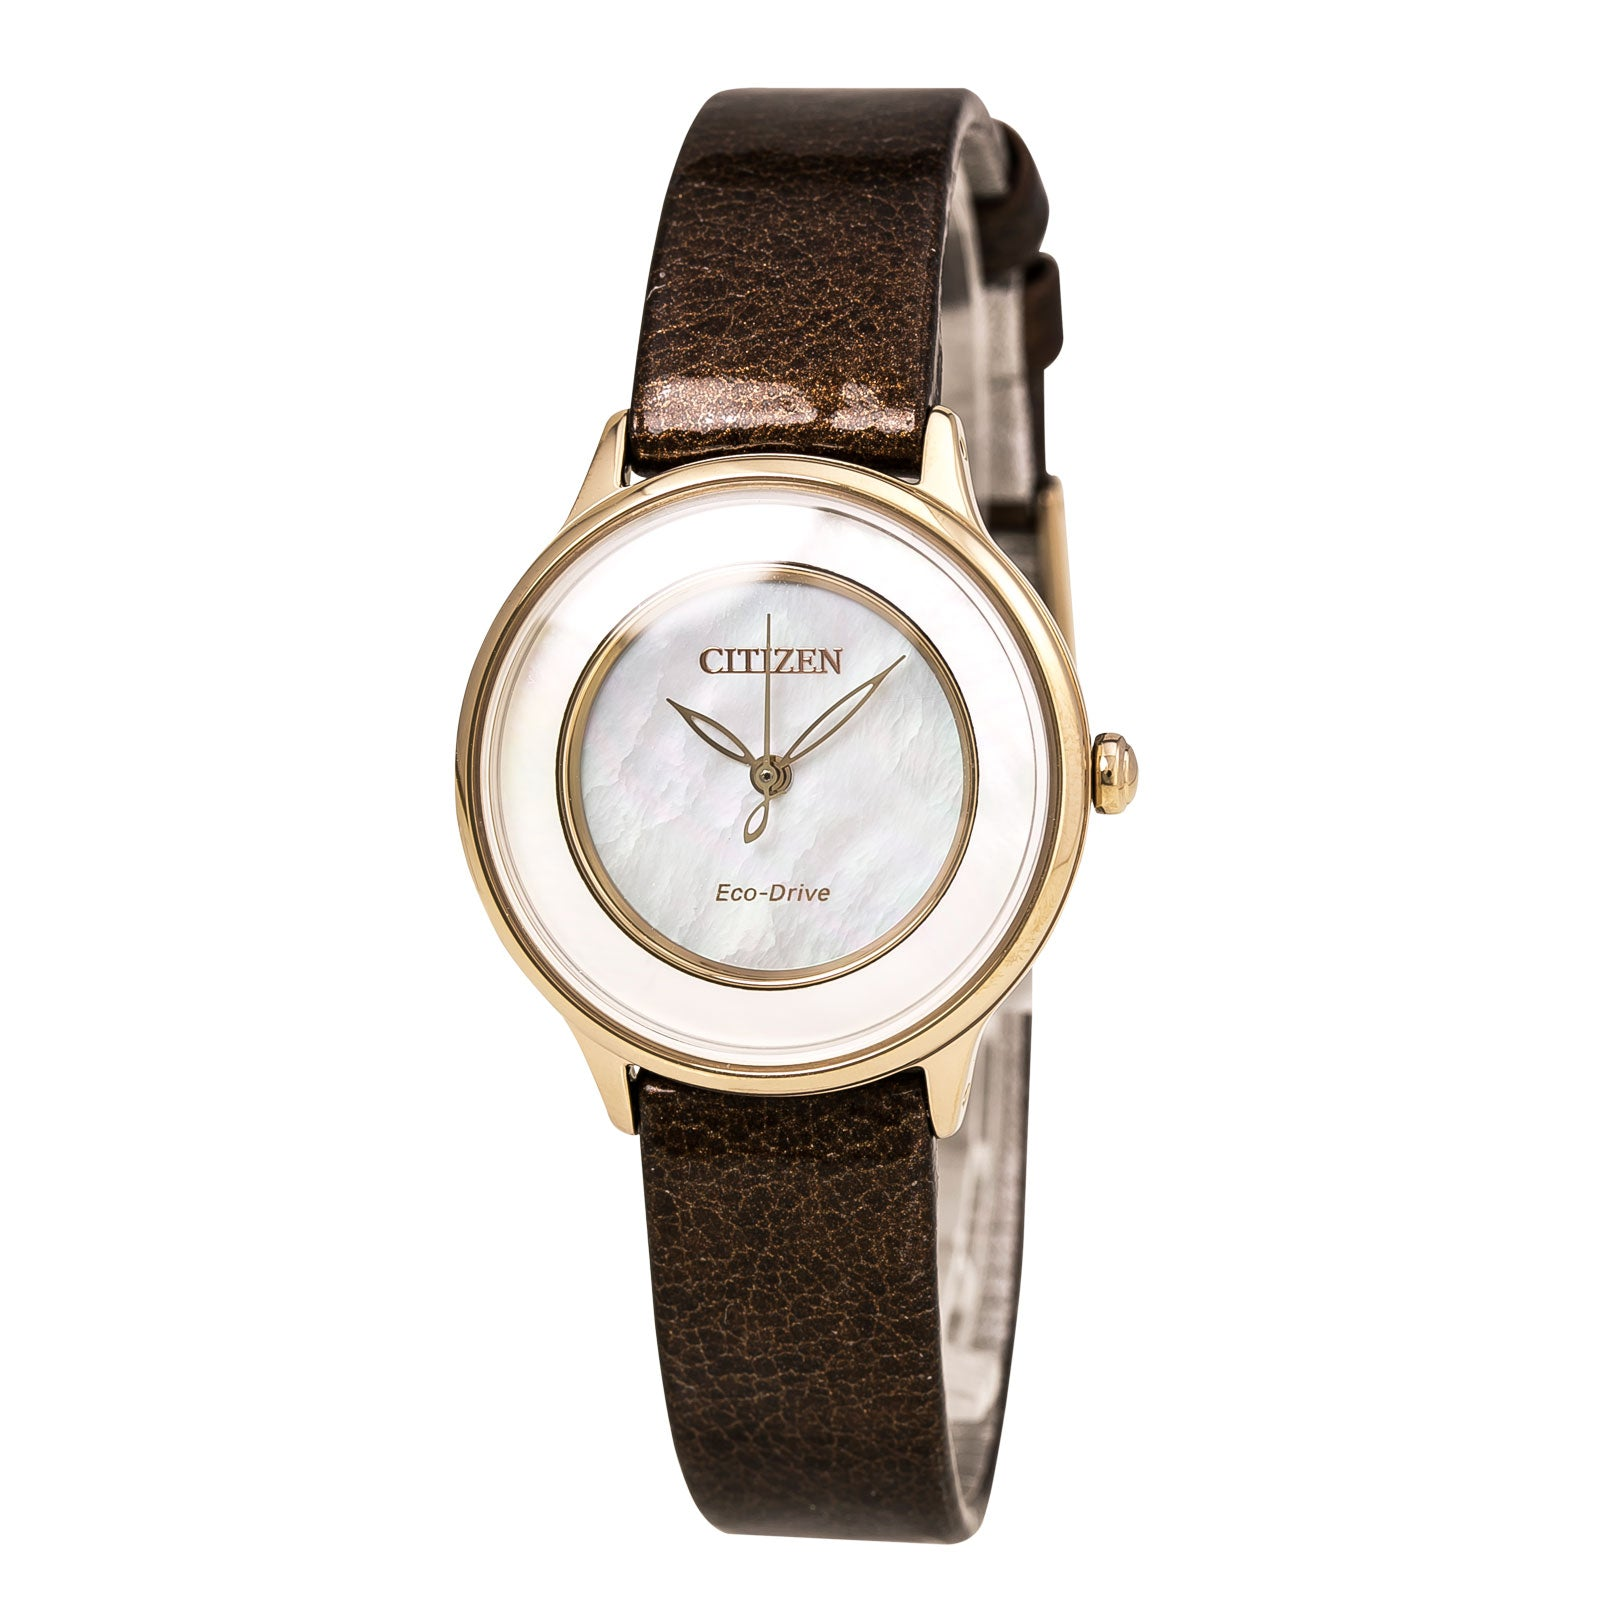 Citizen EM0383-08D Women's L Circle of Time Eco-Drive White MOP Dial Brown Leather Strap Watch